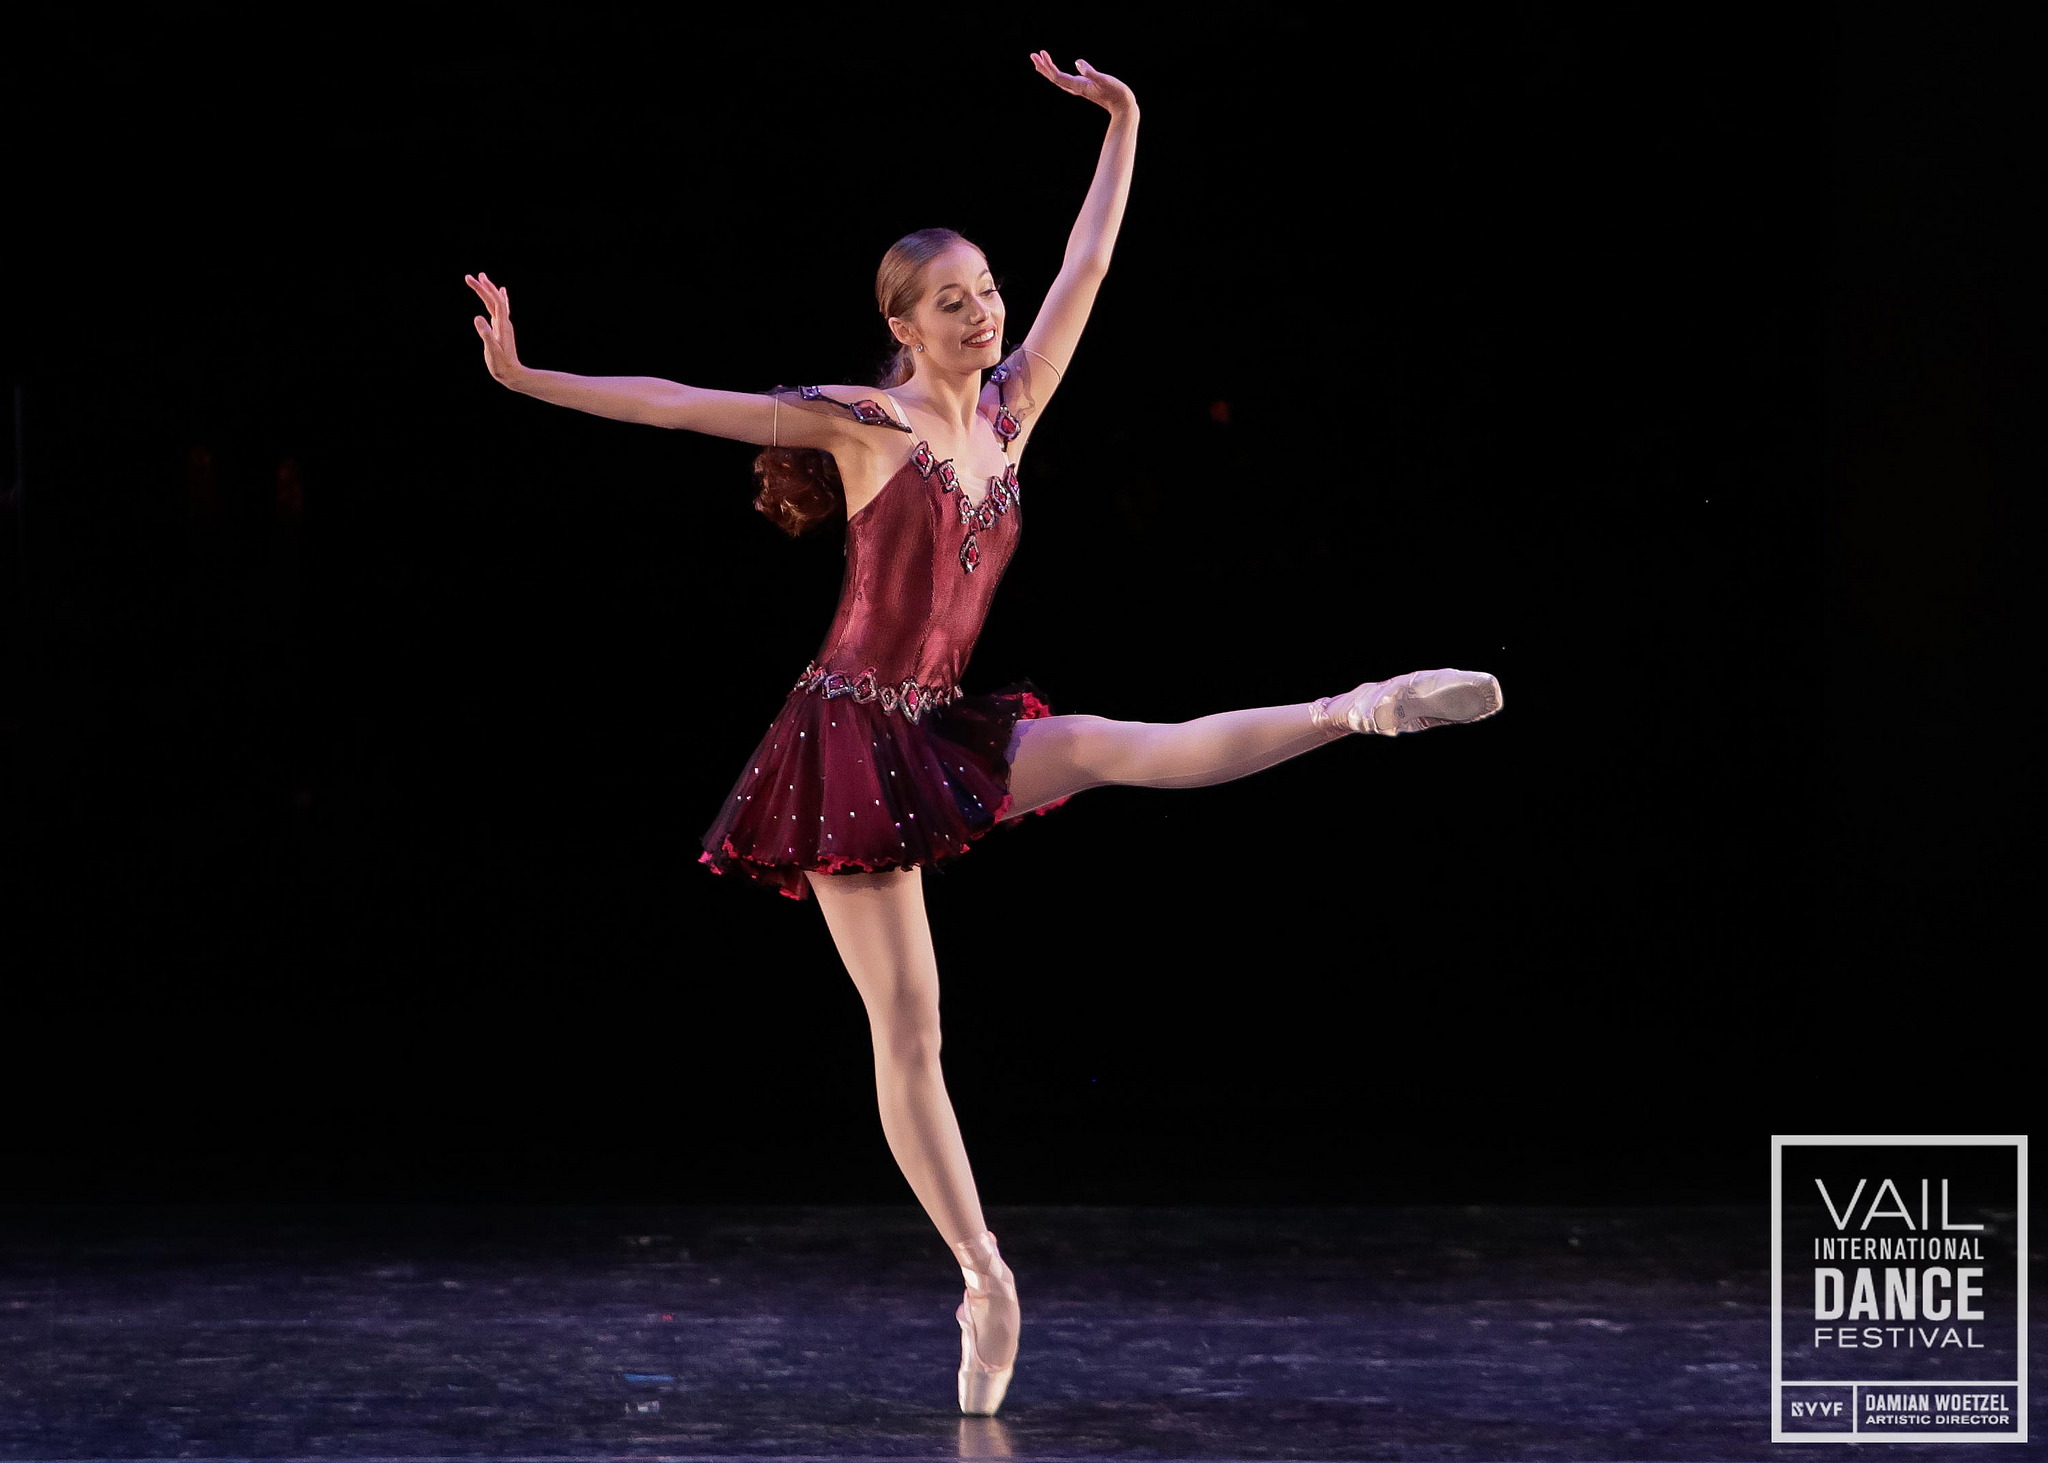 ballet interview, Conversations on Dance, dance interview, dance podcast, Featured, live event, Miami City Ballet, Michael Sean Breeden, New York City Ballet, rebecca king ferraro, unity phelan, unity phelan new york city ballet soloist, vail dance festival